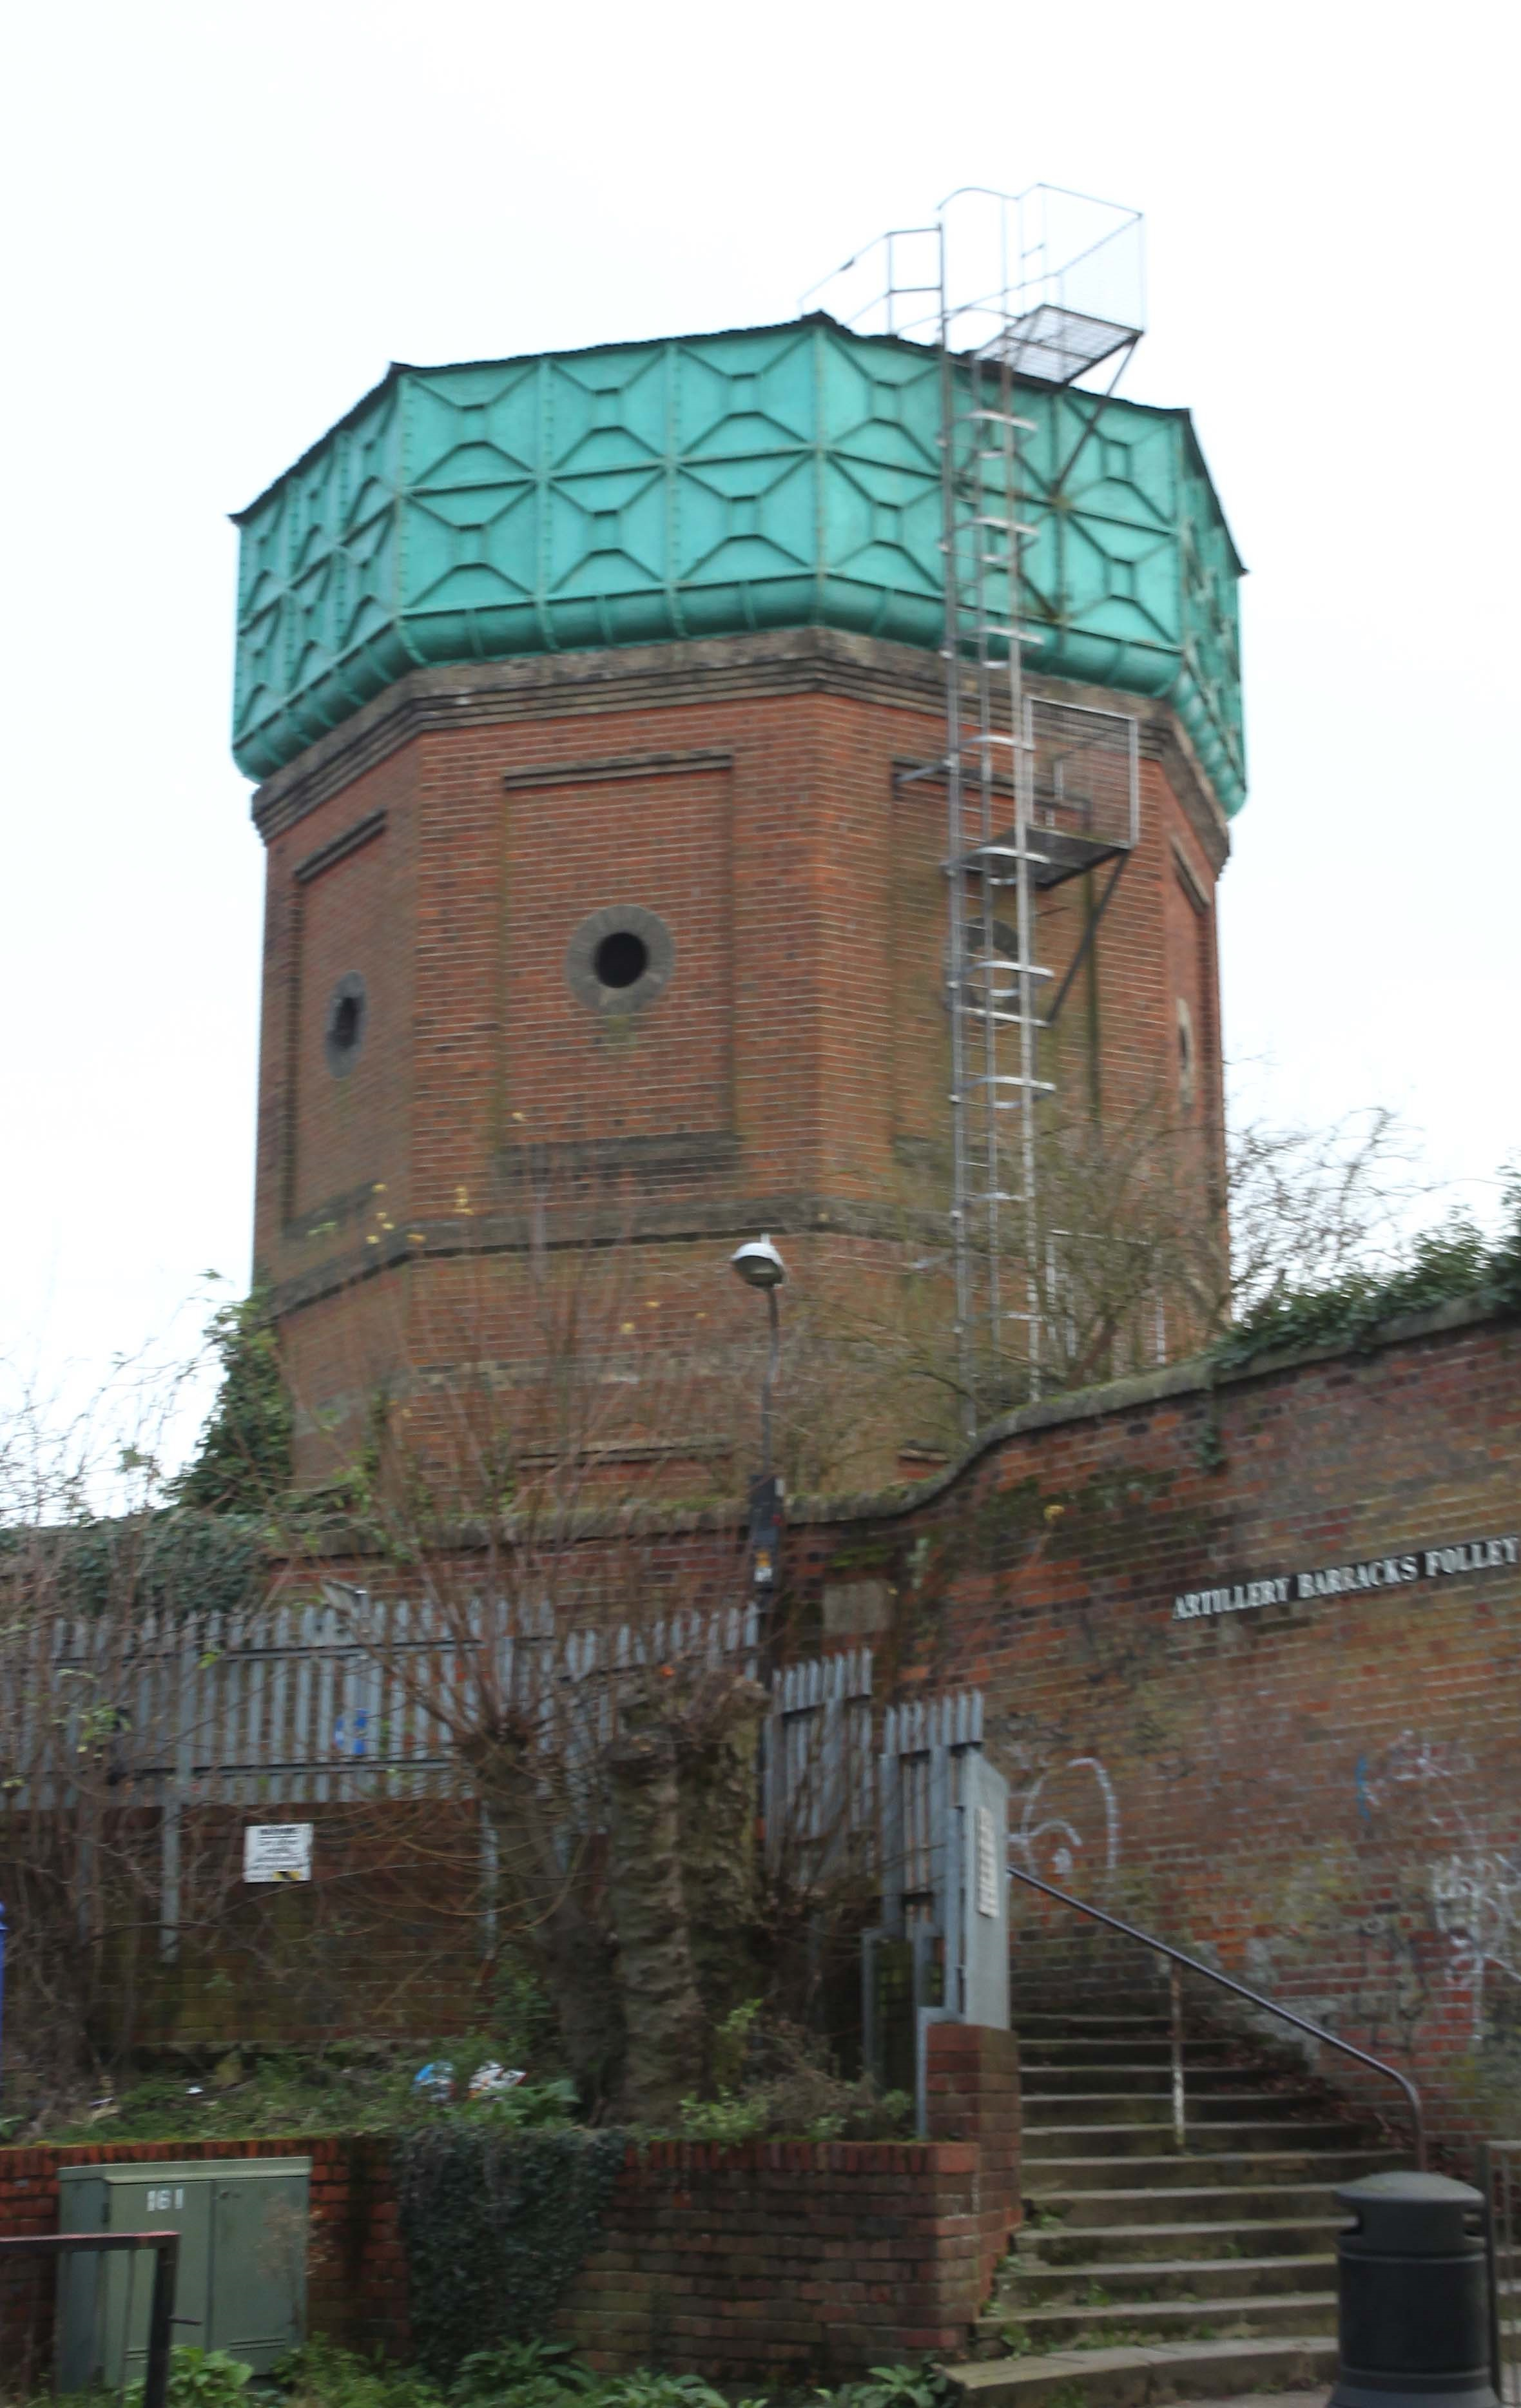 MoD water tower sold to mystery buyer